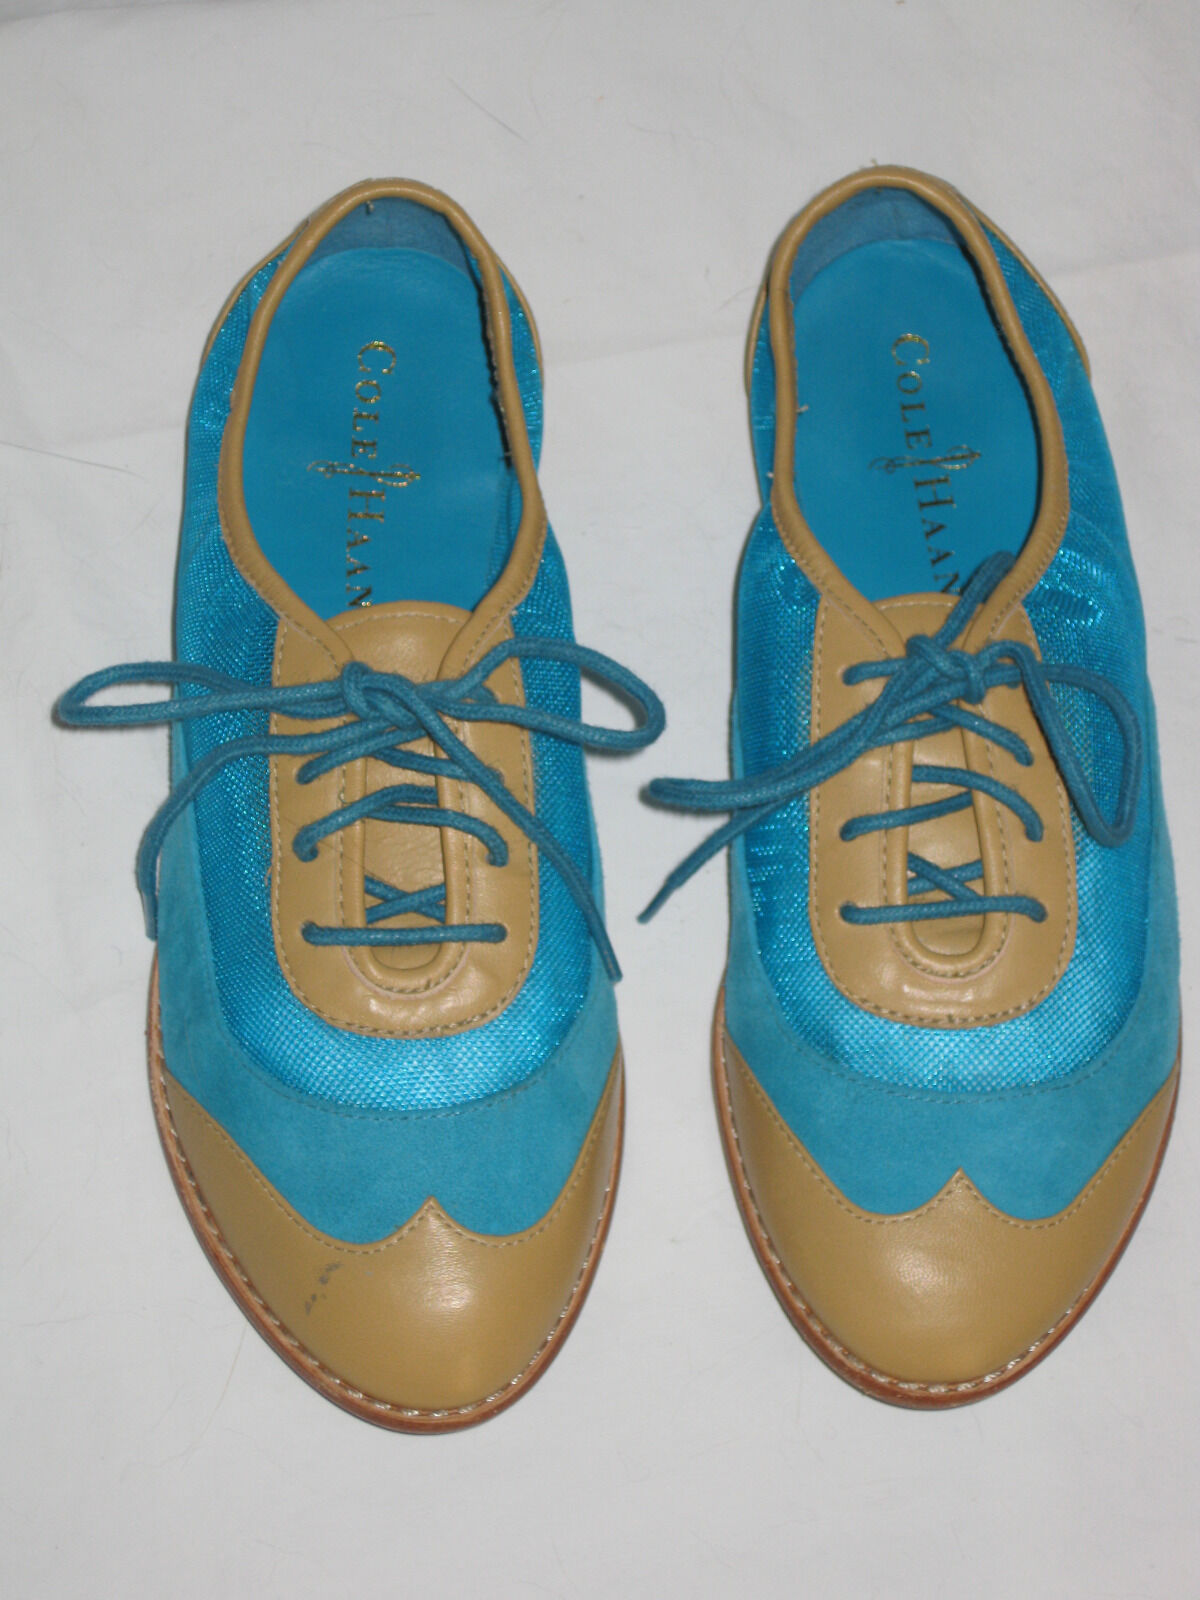 Cole Haan Kody Tan Oxfords Turquoise Suede & Tan Kody Leder and Mesh Lace Up Größe 5.5B 128a0f